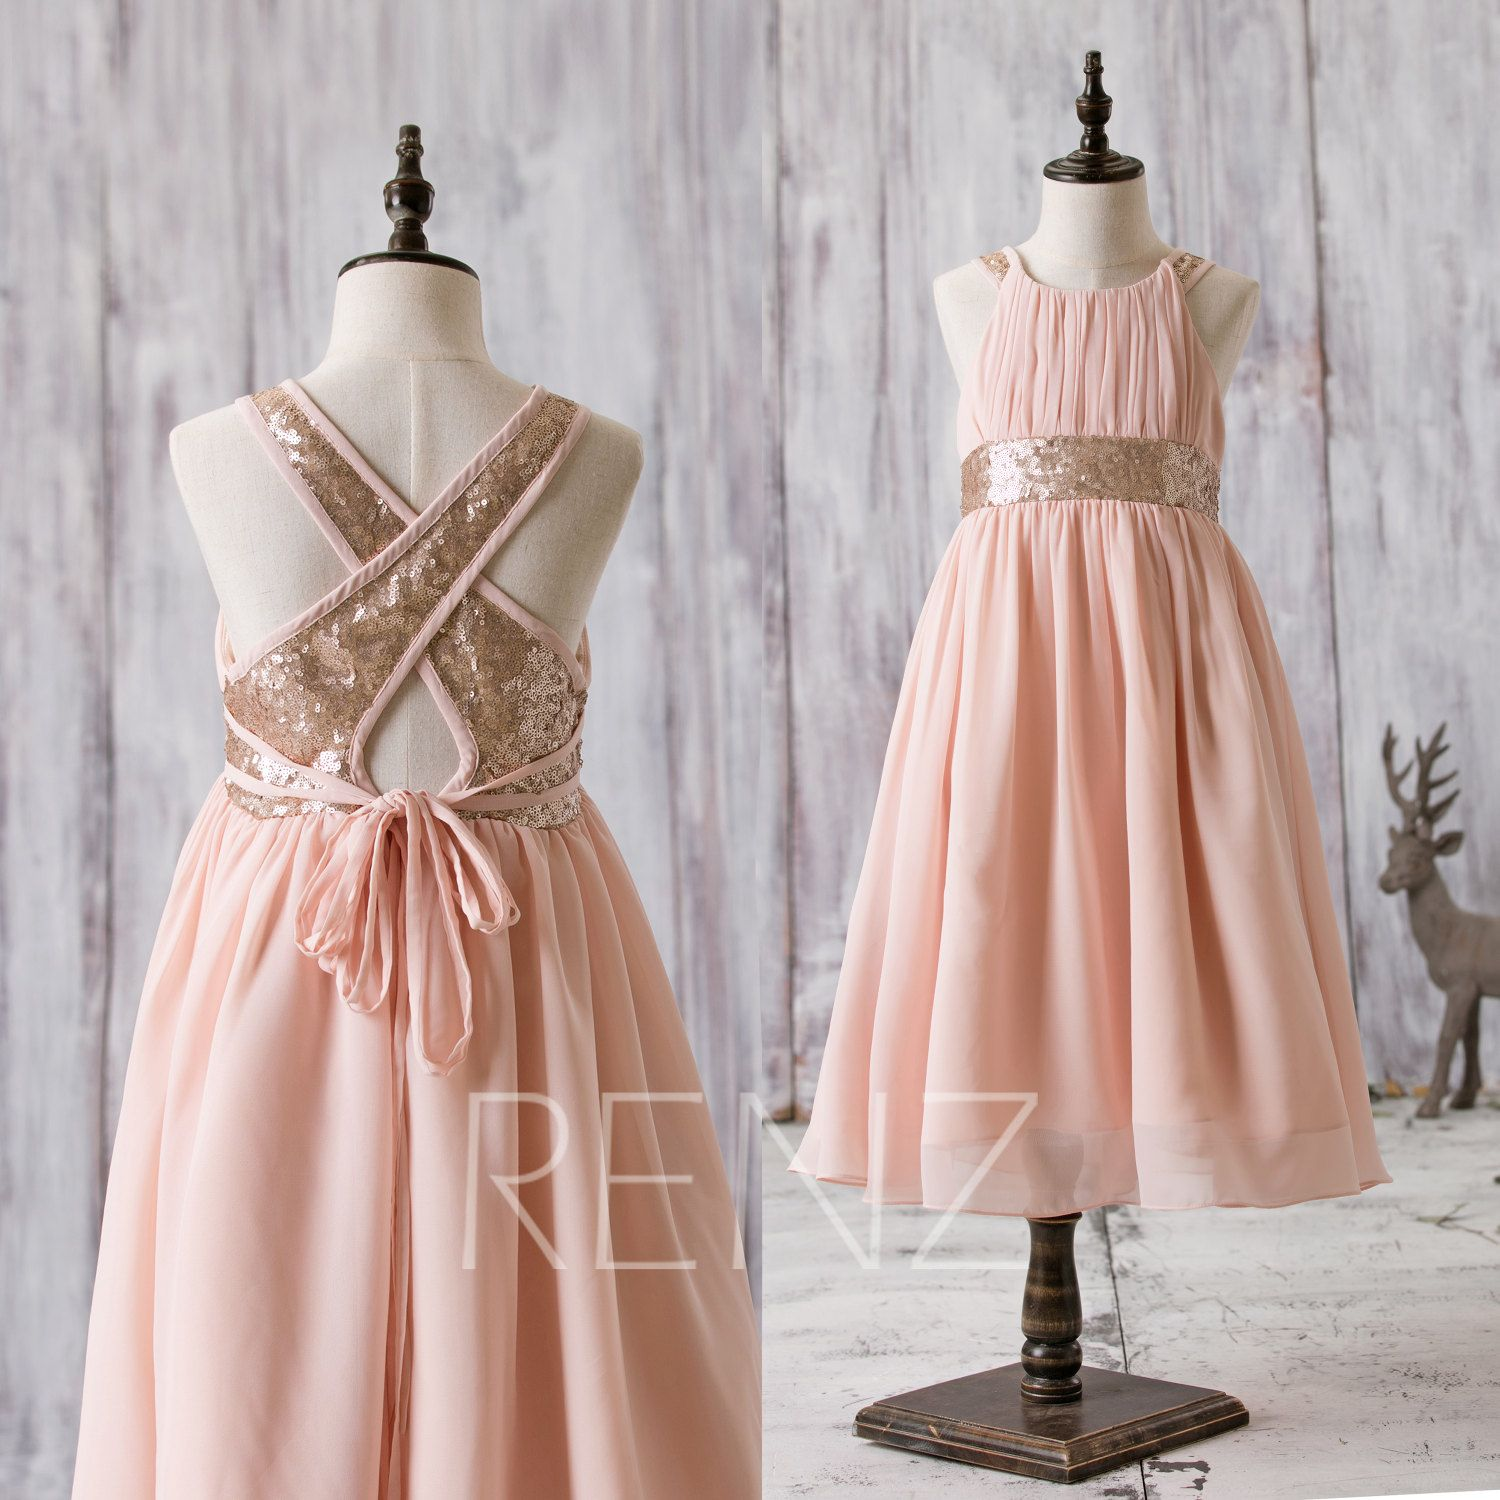 Junior bridesmaid dress peach rose gold sequin flower girls dress junior bridesmaid dress peach rose gold sequin flower girls ombrellifo Choice Image